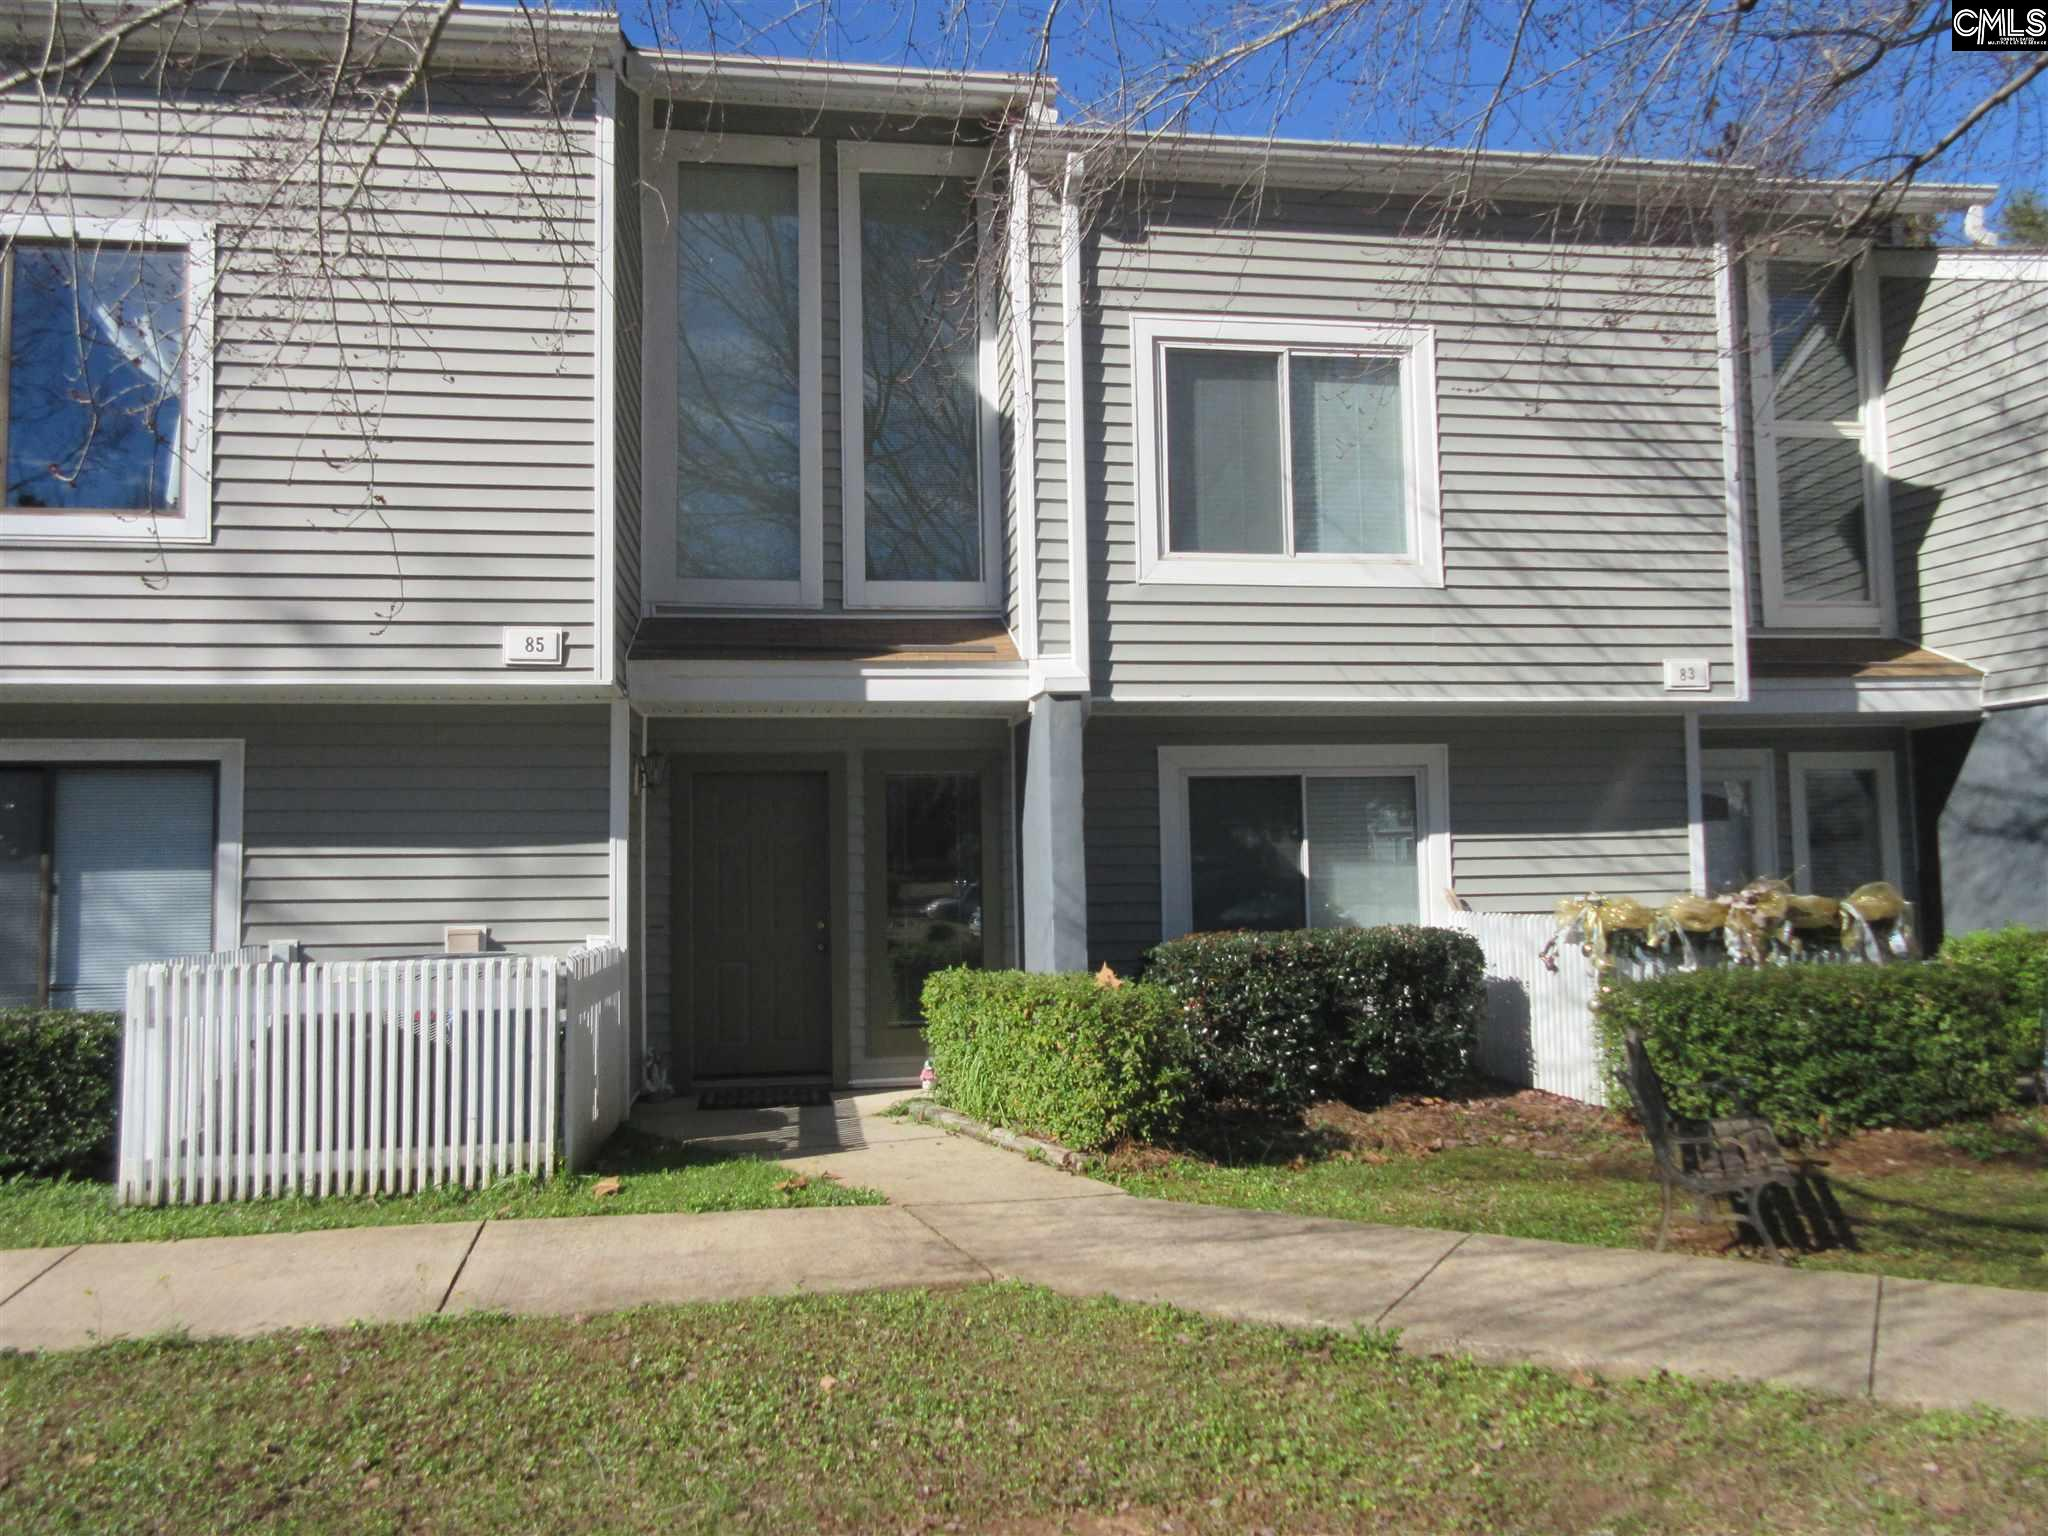 85 Windward Columbia, SC 29212-8059